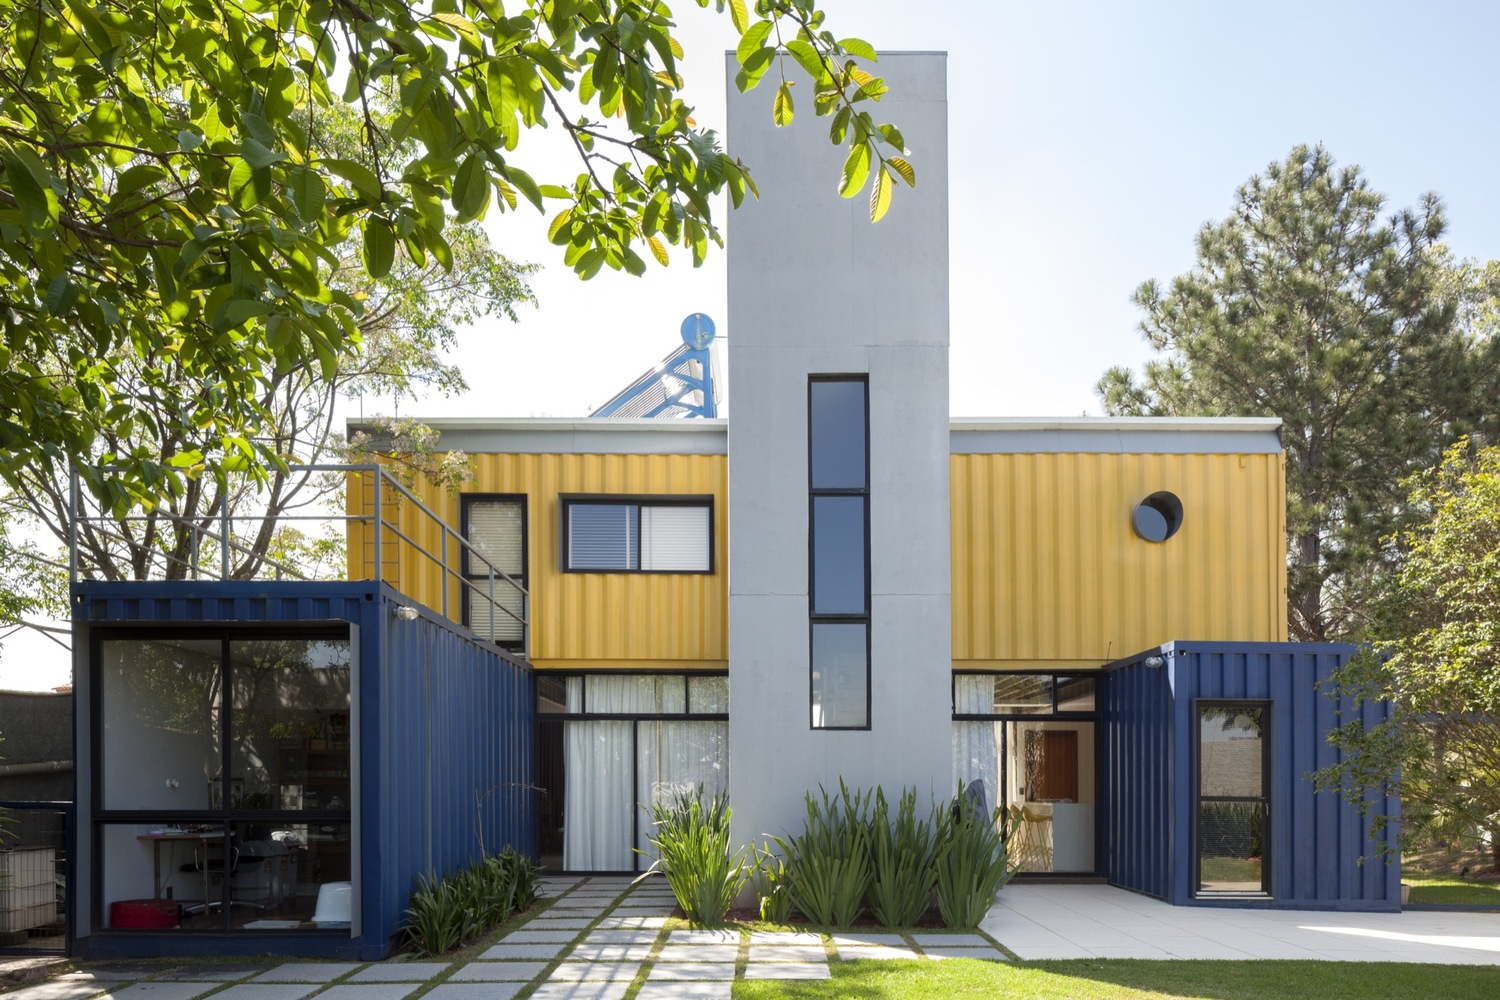 Shipping Container Homes: 3 Bedroom Shipping Container Home Design on steel home designs, warehouse home designs, pallet home designs, box home designs, barn home designs, pavilion home designs, cottage home designs, shipping containers as homes, trailer home designs, small home designs, mobile home designs, shipping containers into homes, container house designs, stone home designs, modern home designs, straw bale home designs, wood home designs, container homes plans and designs, rammed earth home designs, prefab home designs,